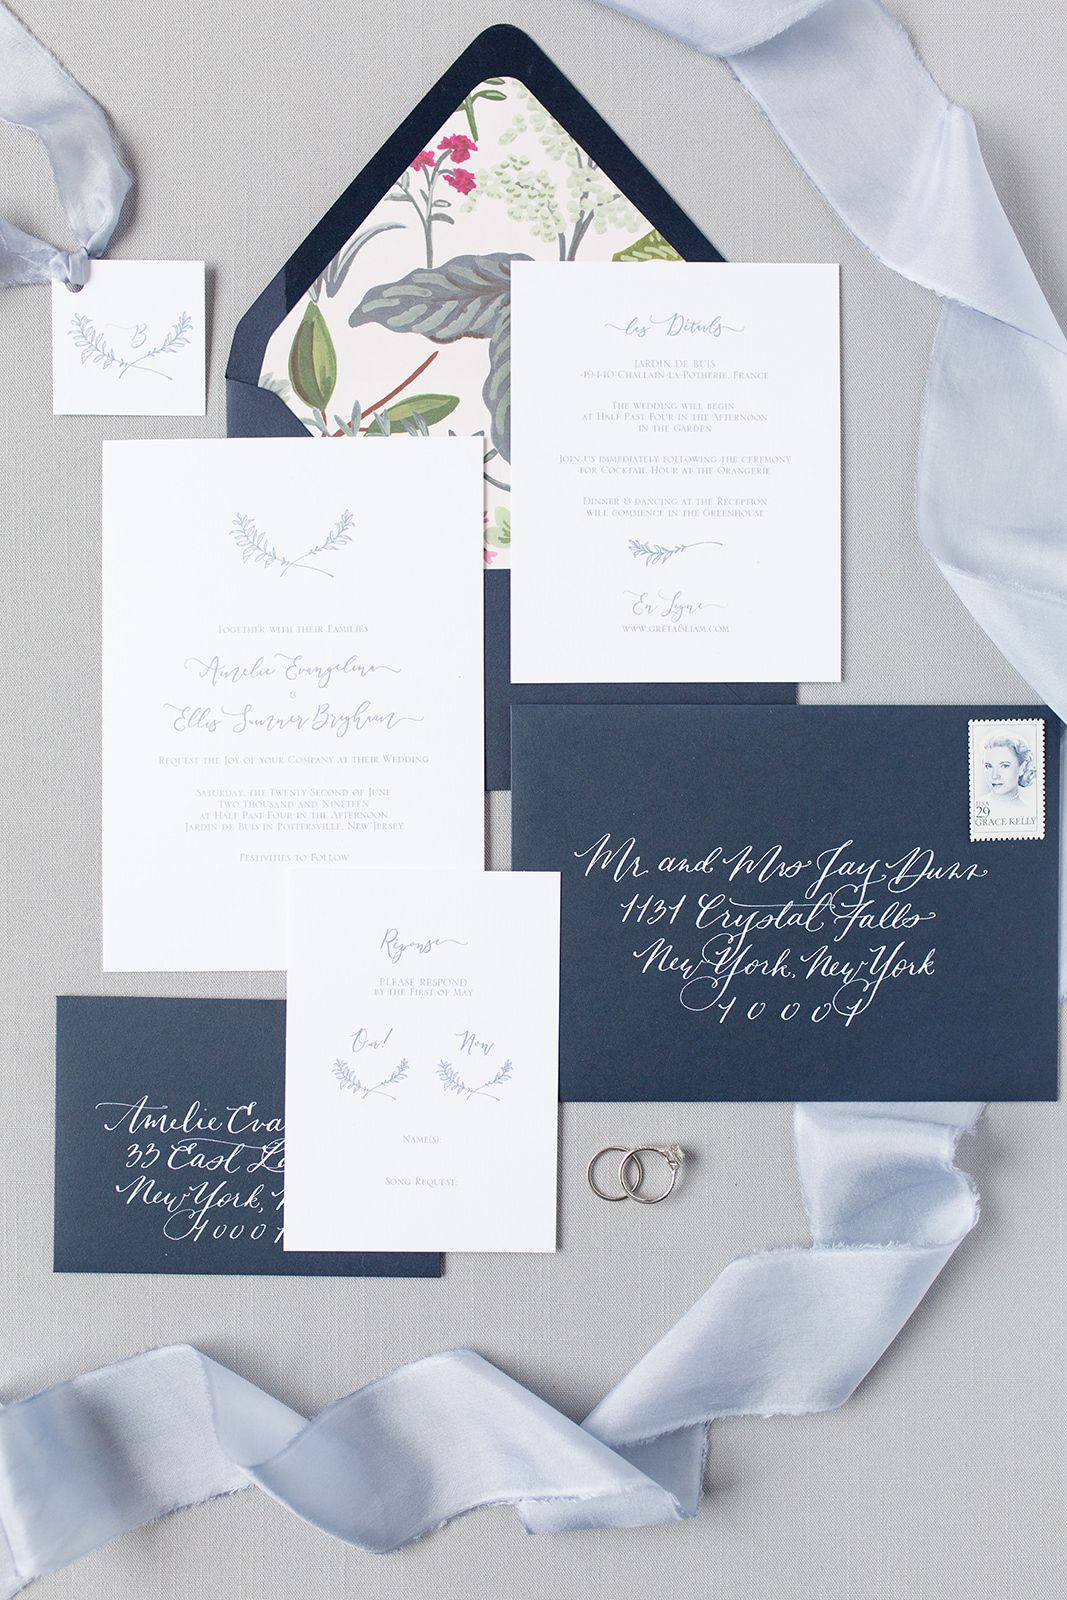 This delicate indigo stationery suite was created